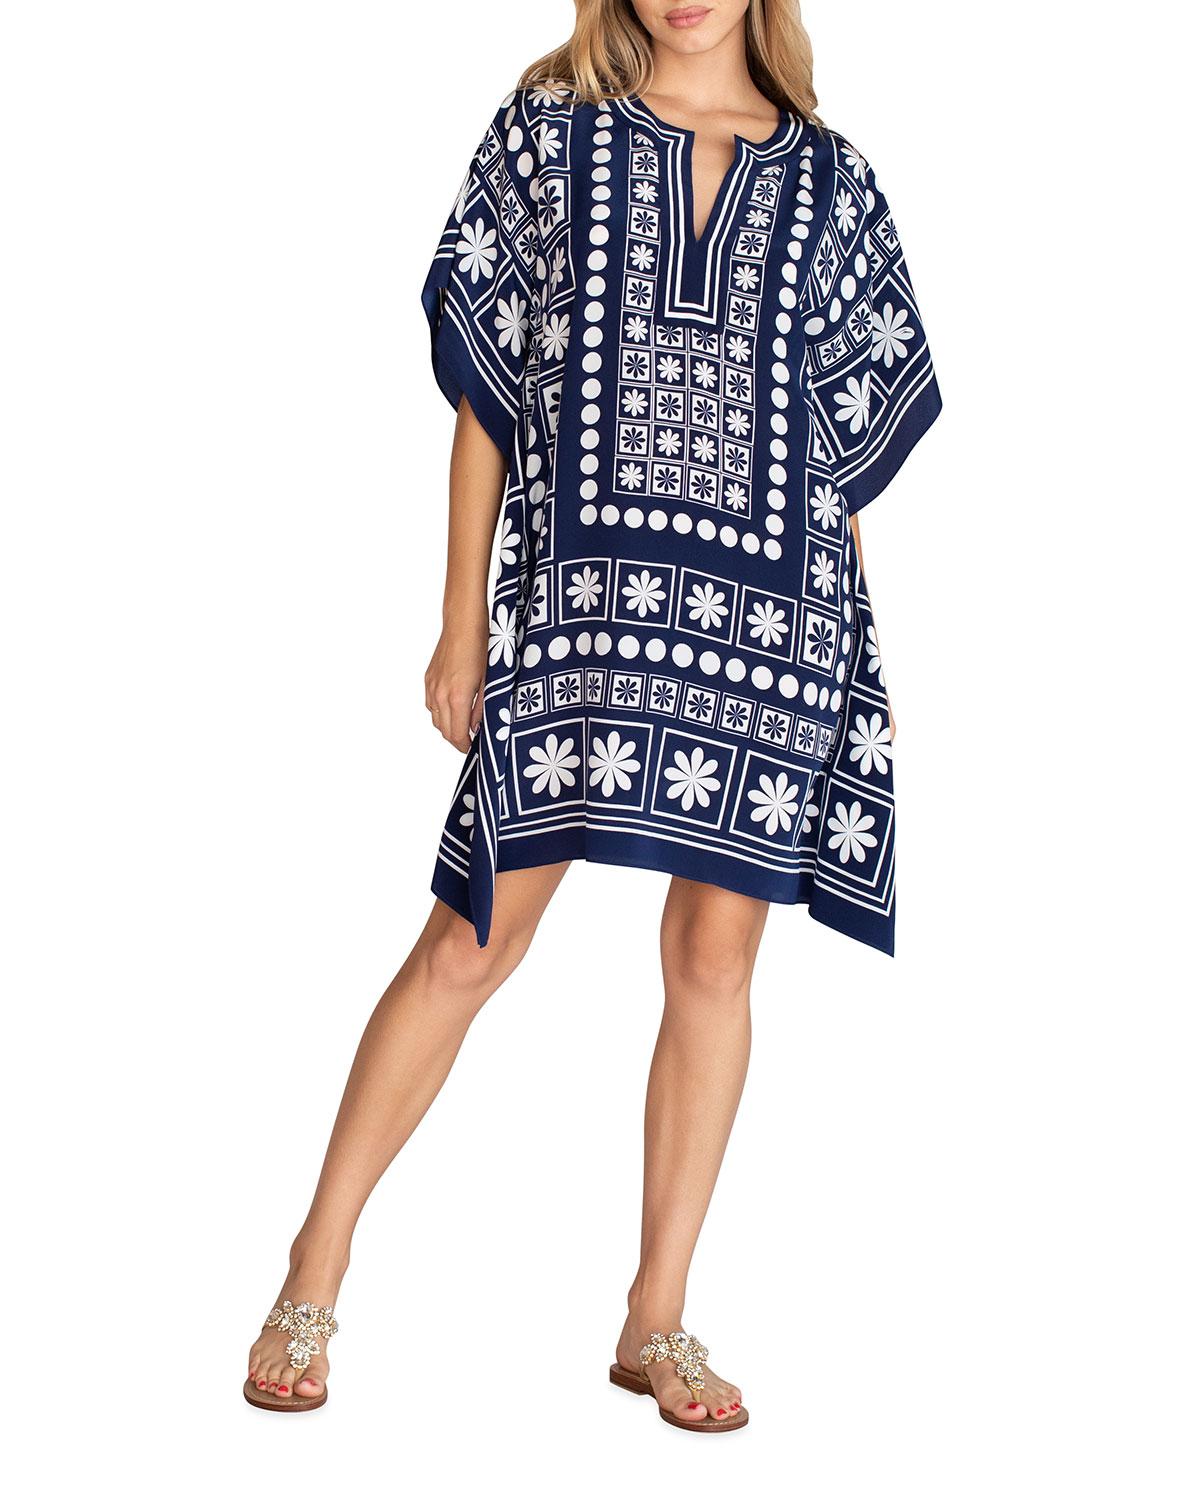 Trina Turk THEODORA GRAPHIC CAFTAN DRESS